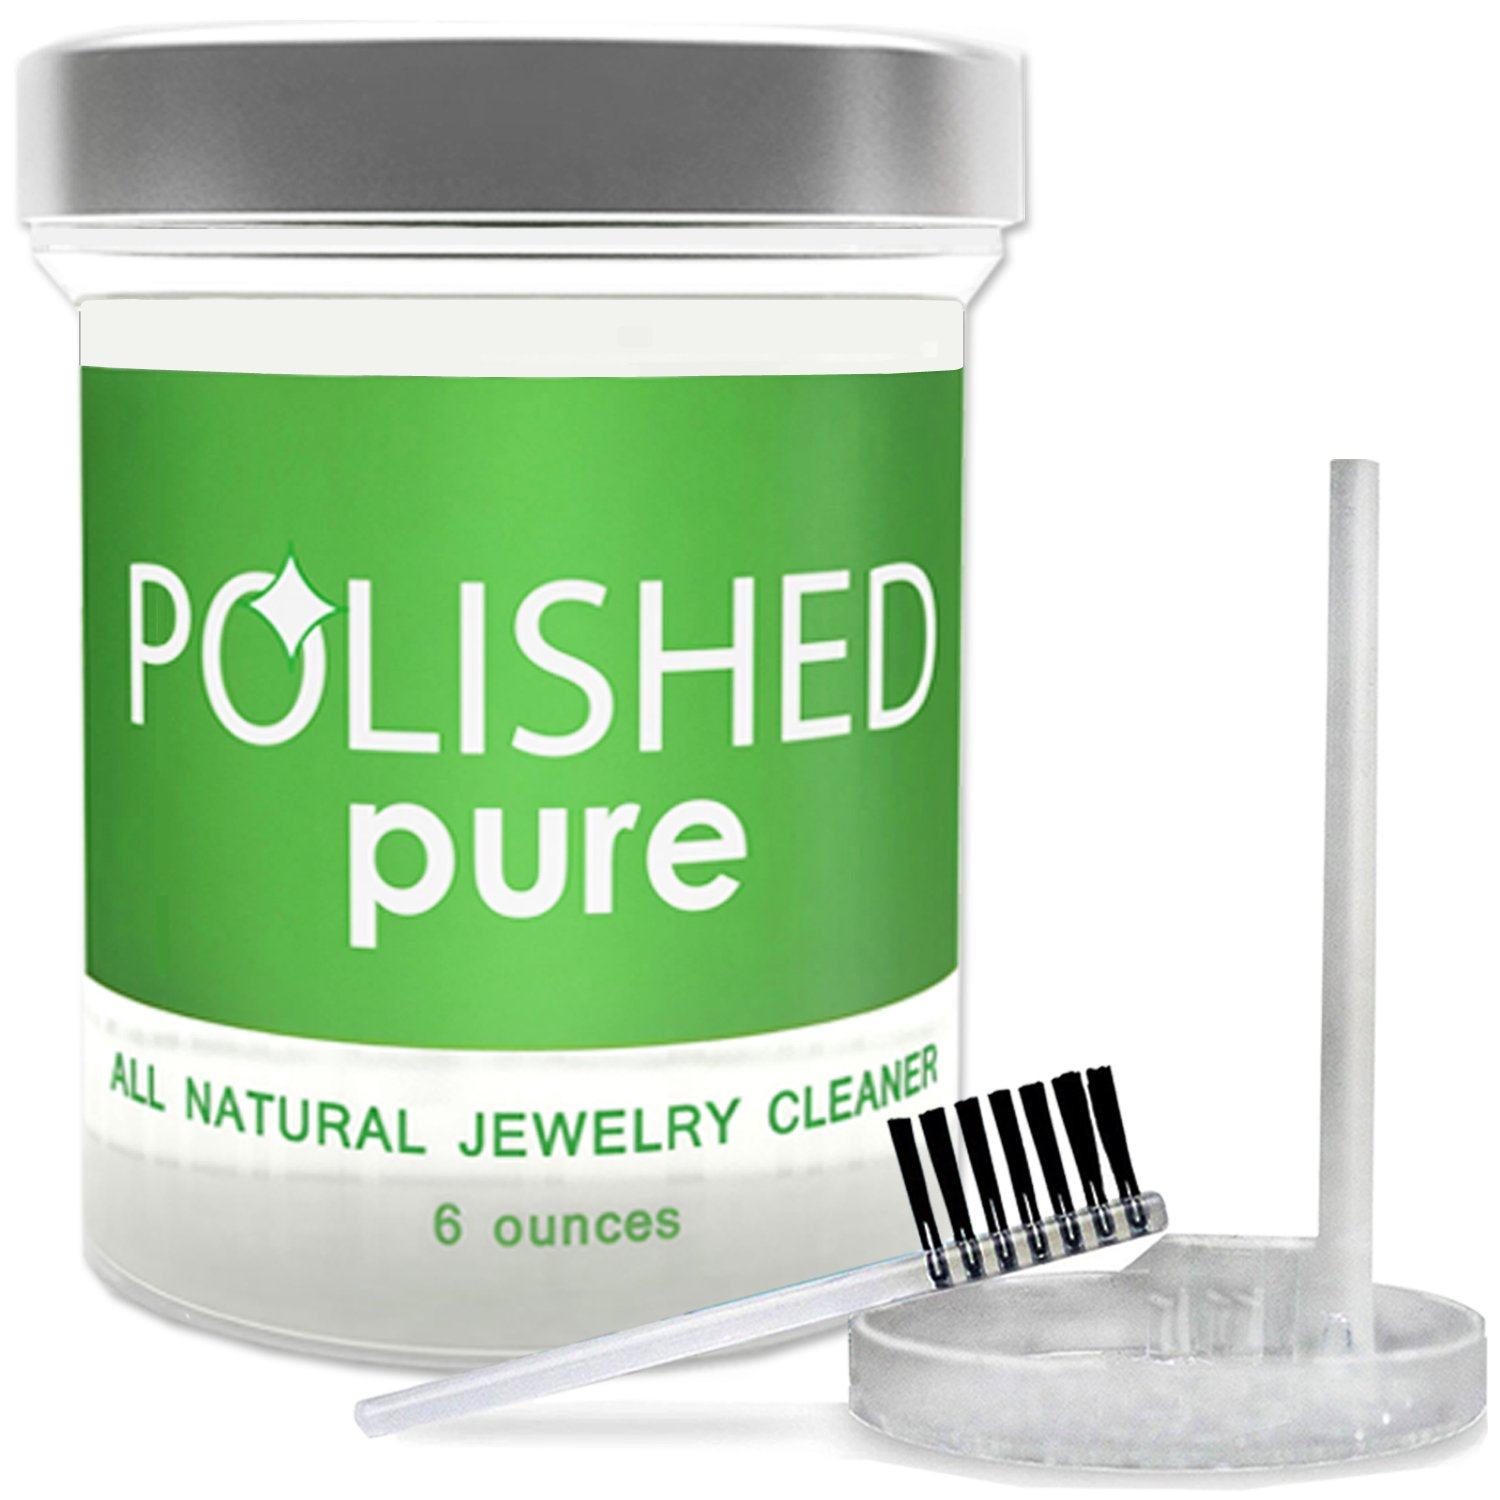 Polished All-Natural Jewelry Cleaner, Professional Clean in 2-Minutes! No Ammonia Jewelry Cleaning Solution, Brush + Tray | Made in USA, Safe on Skin + Diamond Ring, Sapphire + Gold Jewelry Cleaners by Polished (Image #1)